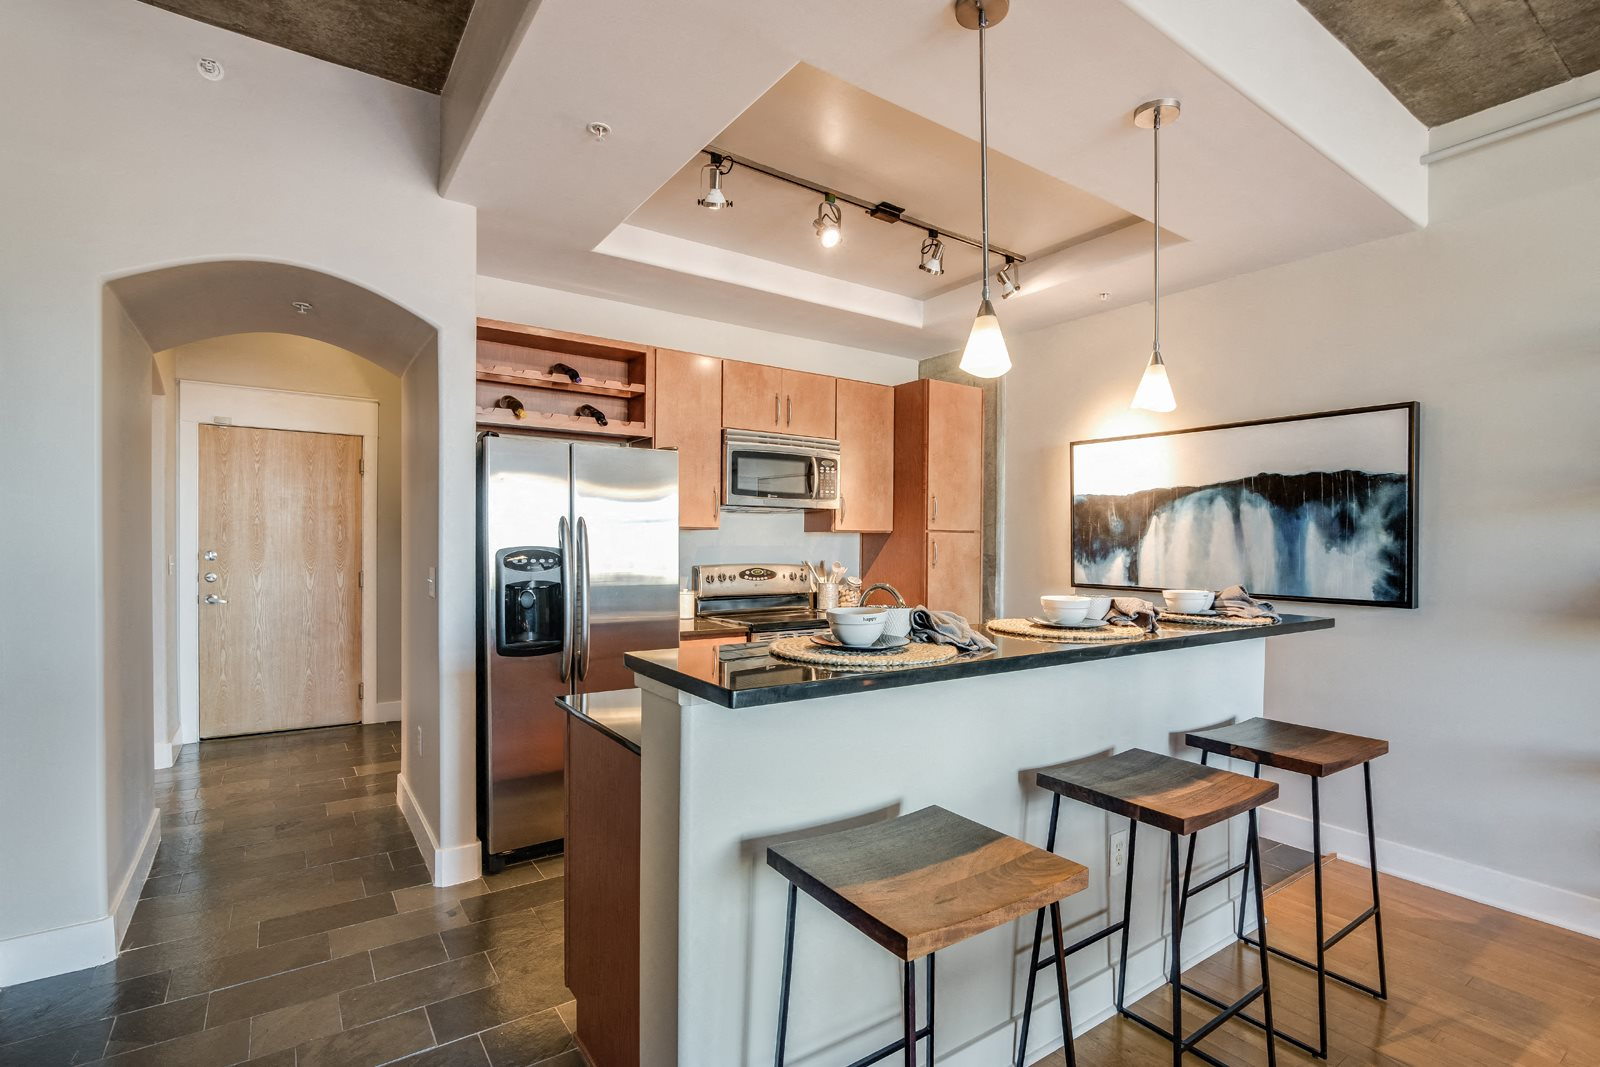 Spacious kitchen islands ideal for entertaining at Crescent at Fells Point by Windsor, Baltimore, MD